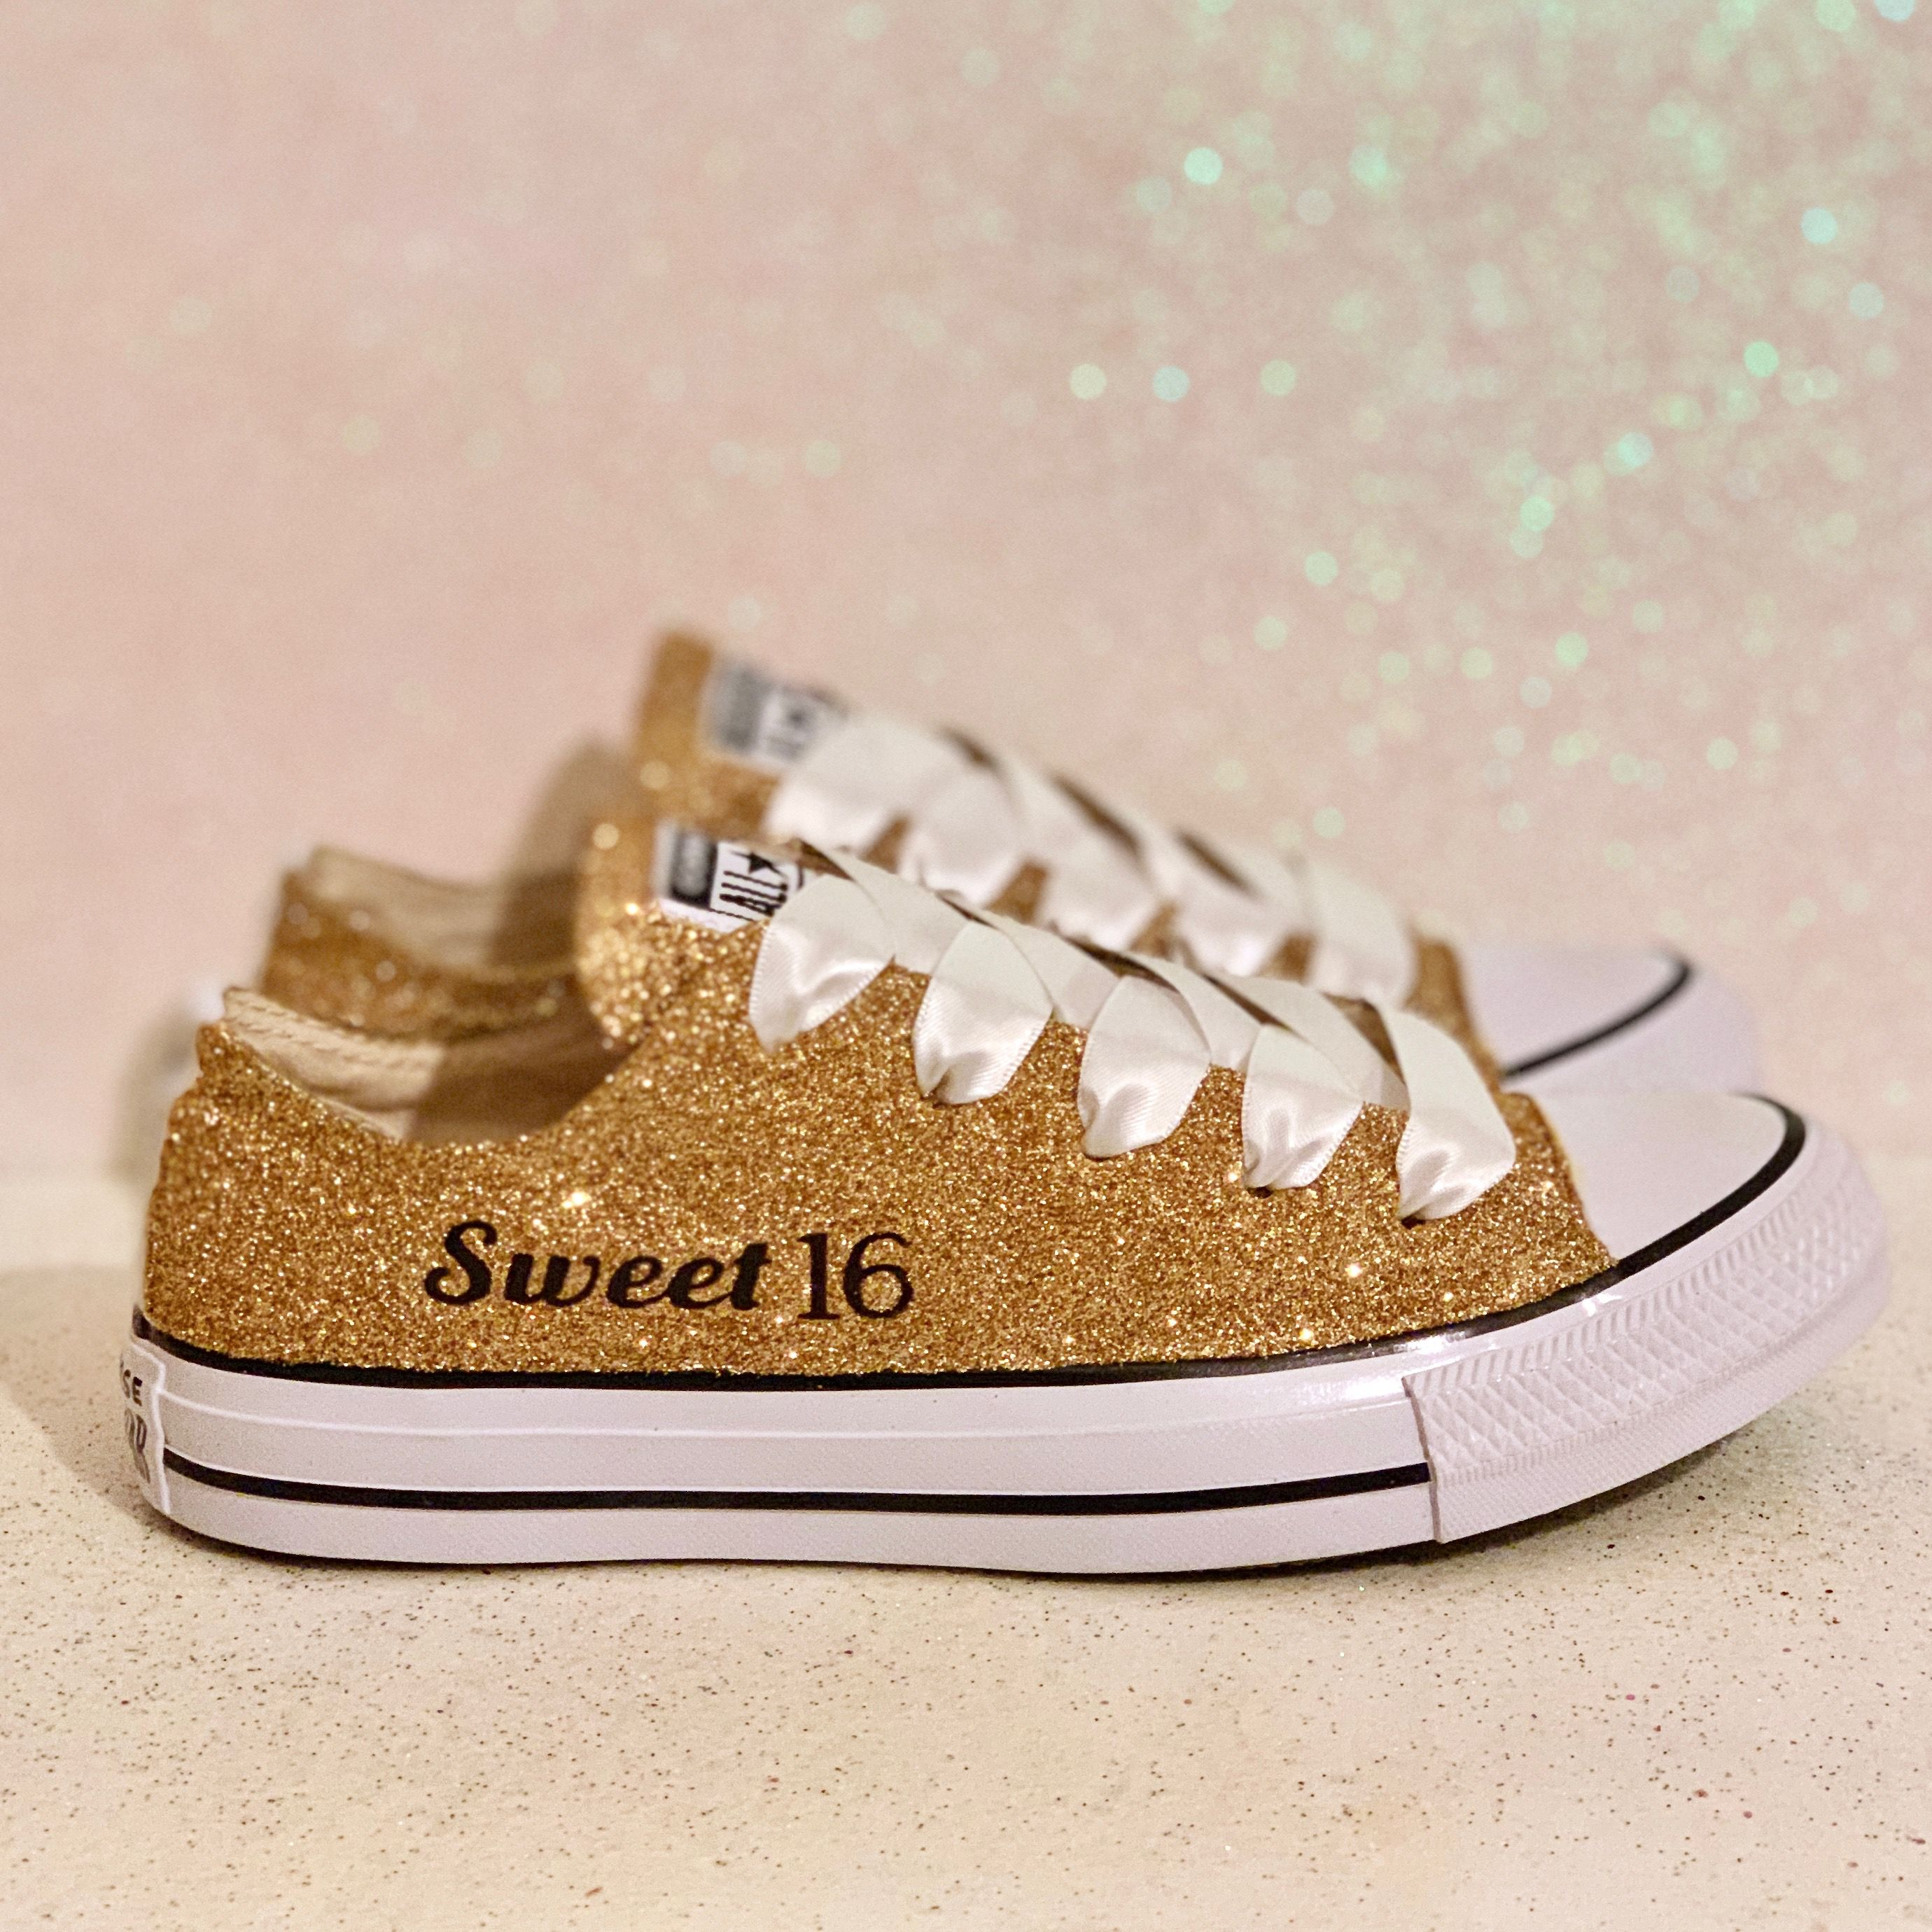 Women's Sparkly Converse All Star Low Sneakers Pale Gold